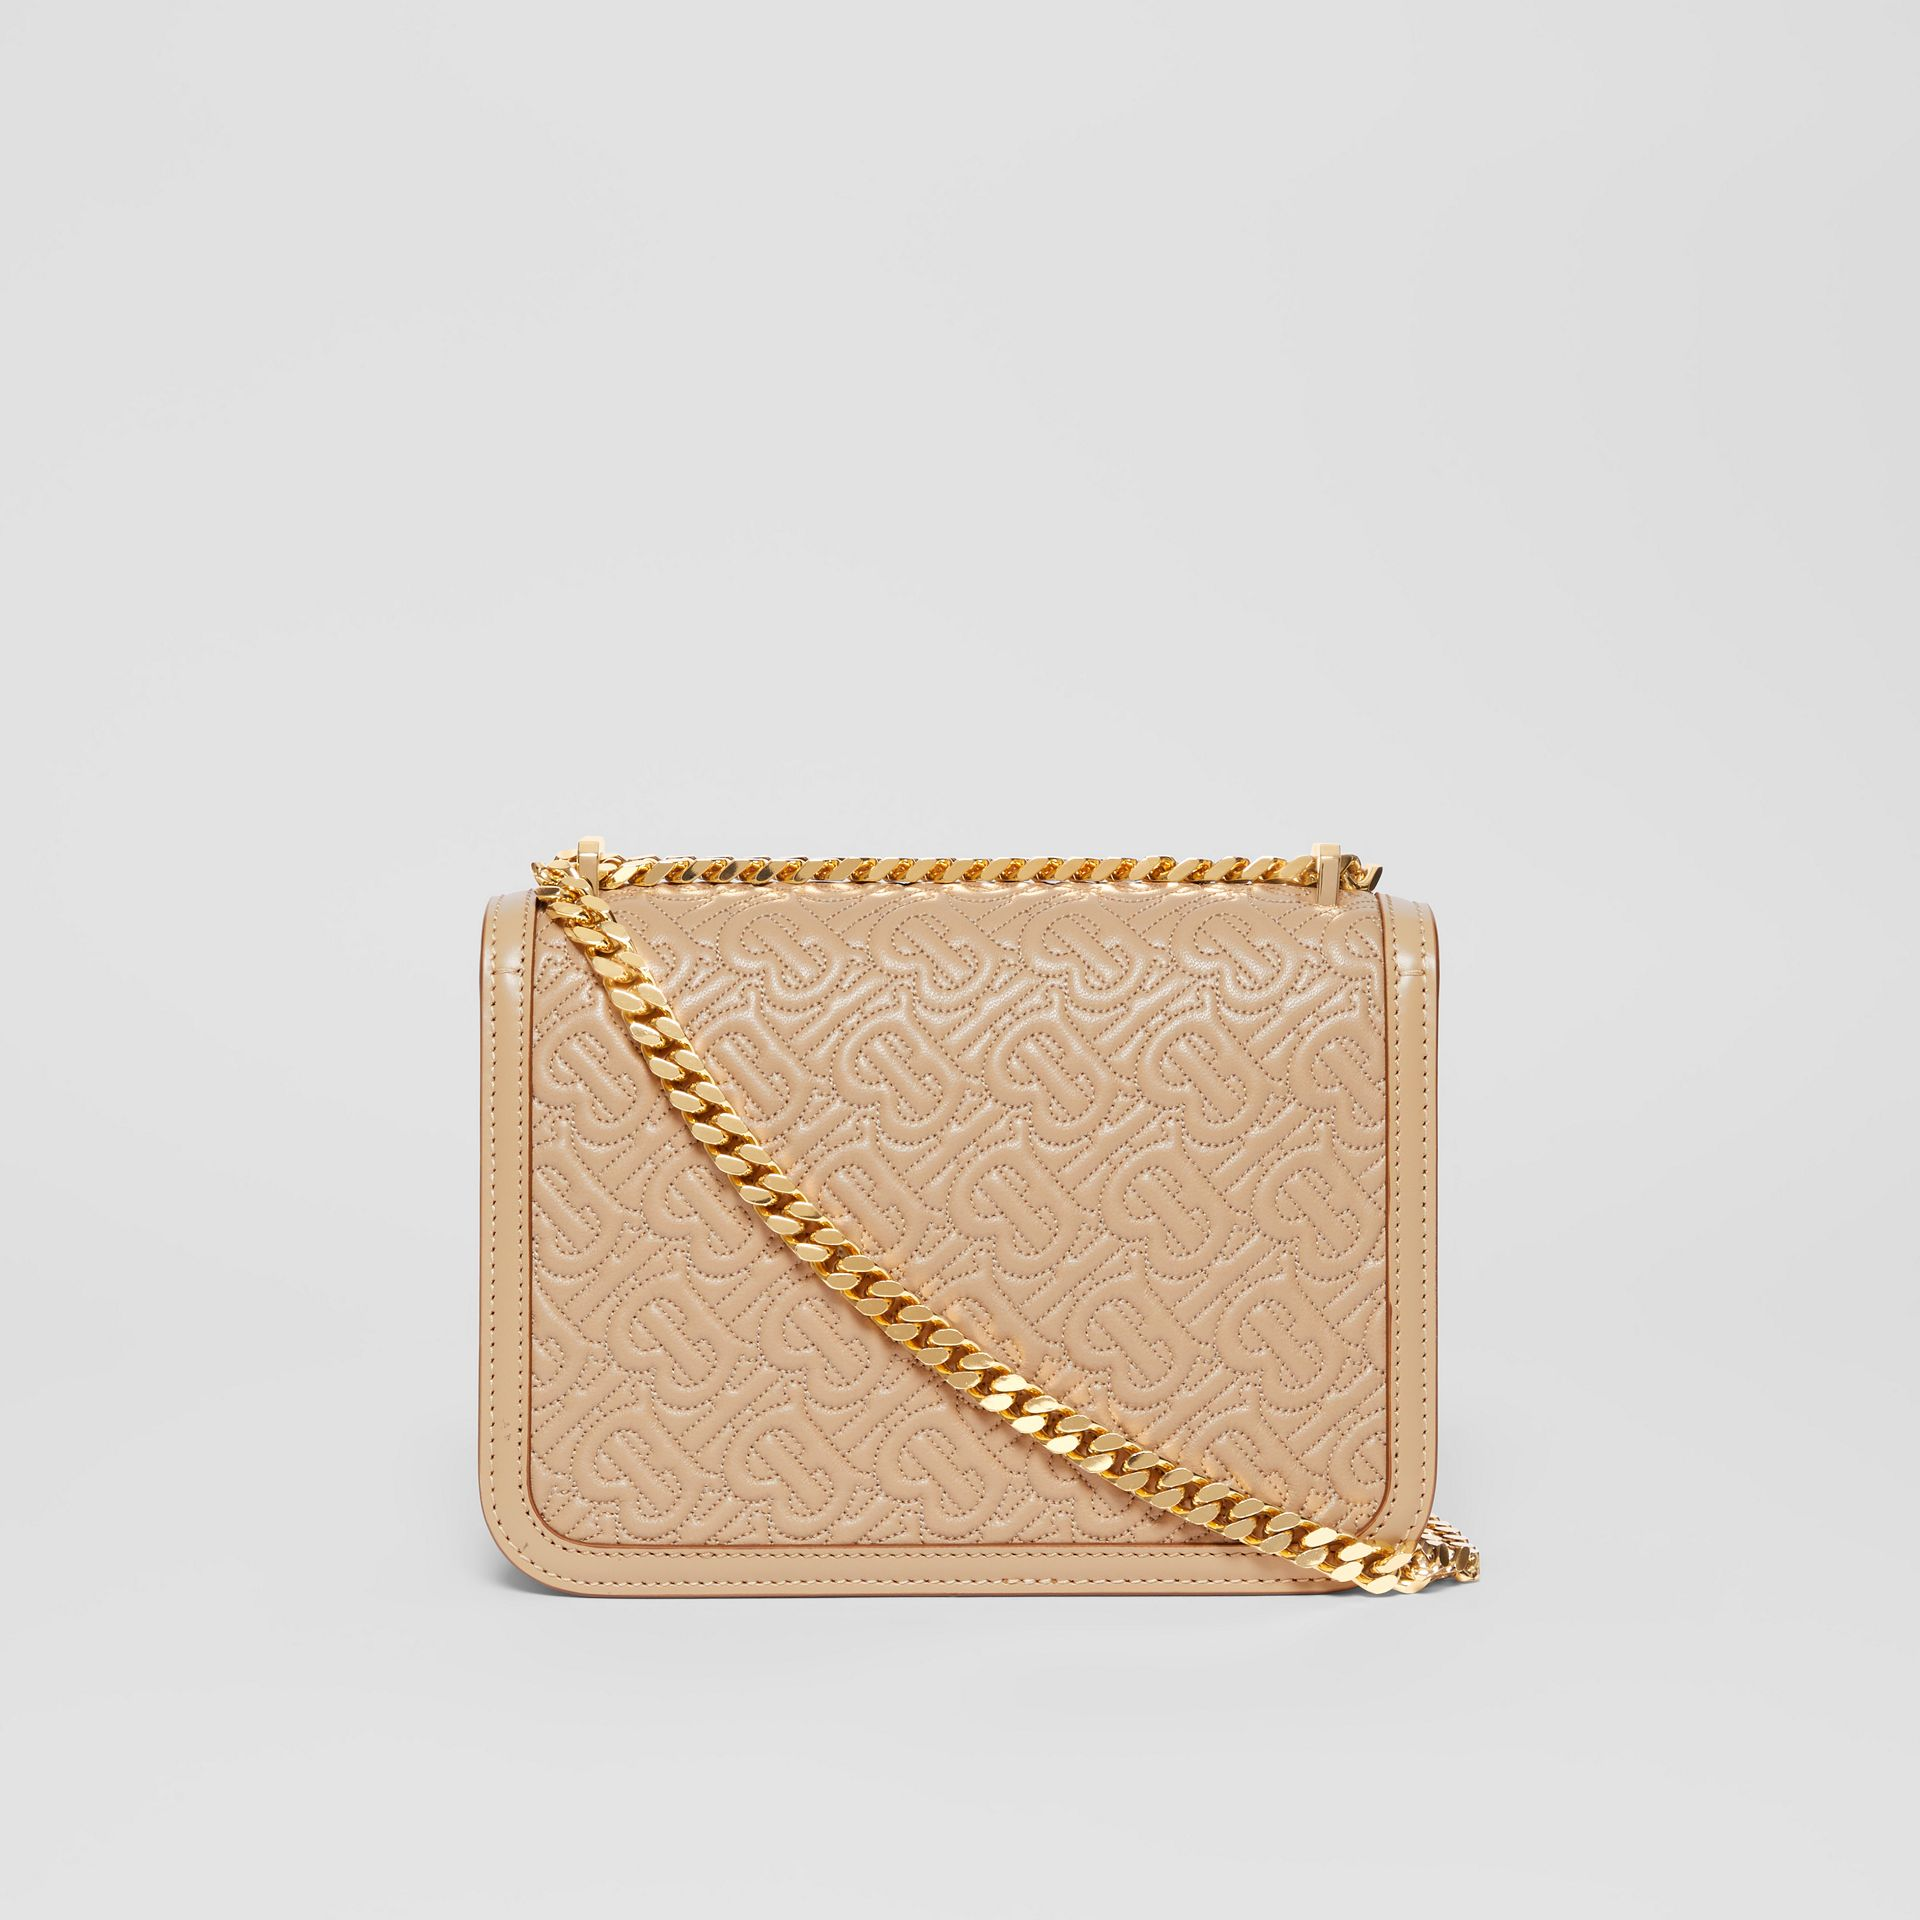 Small Quilted Monogram Lambskin TB Bag in Honey - Women | Burberry - gallery image 7